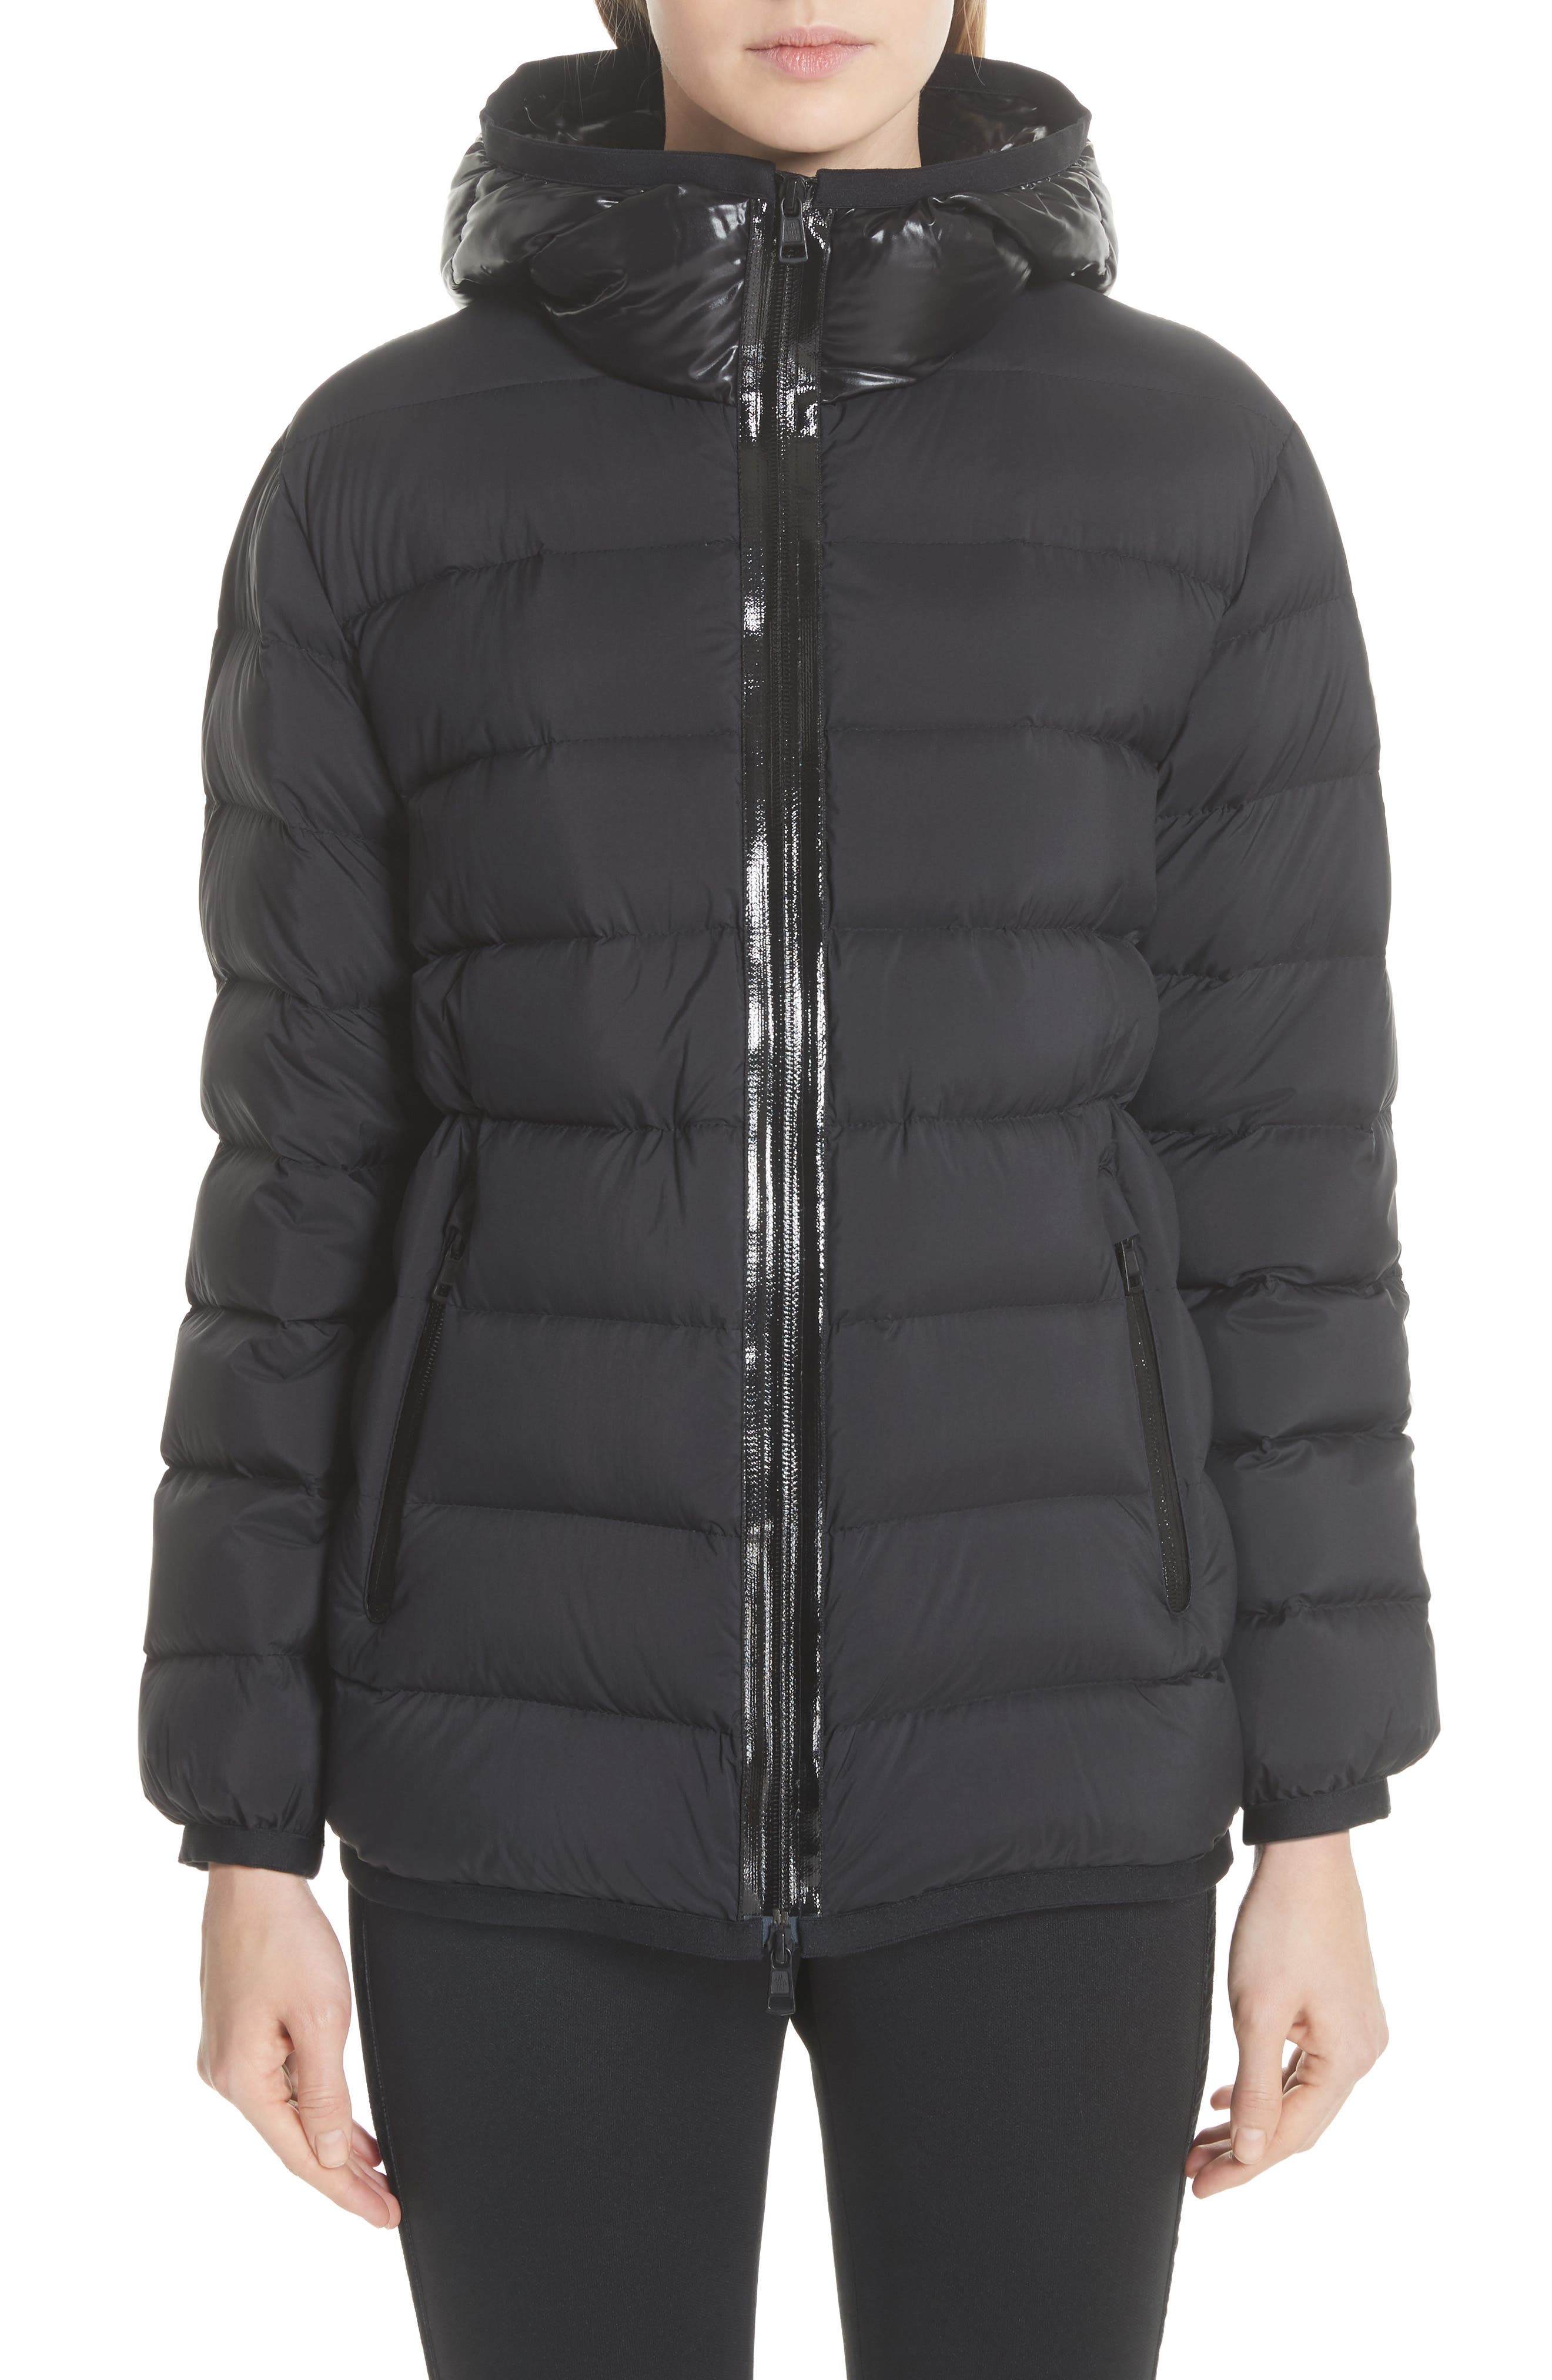 MONCLER, Goeland Quilted Down Jacket, Main thumbnail 1, color, 001